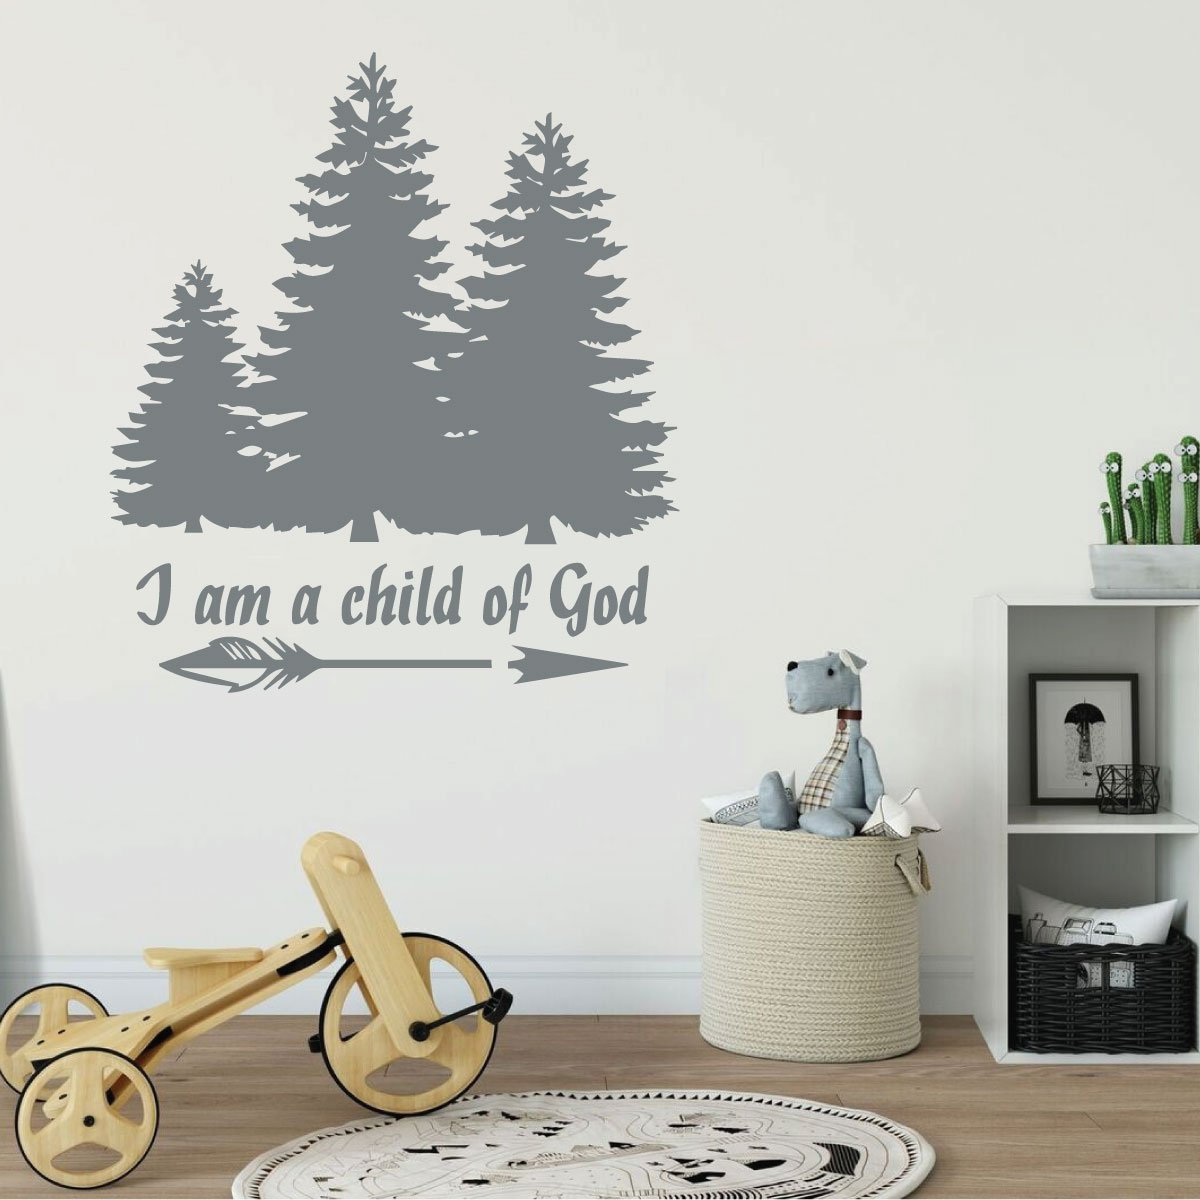 I Am A Child Of God Style 2 wall decal sticker home d/écor 23 x 23